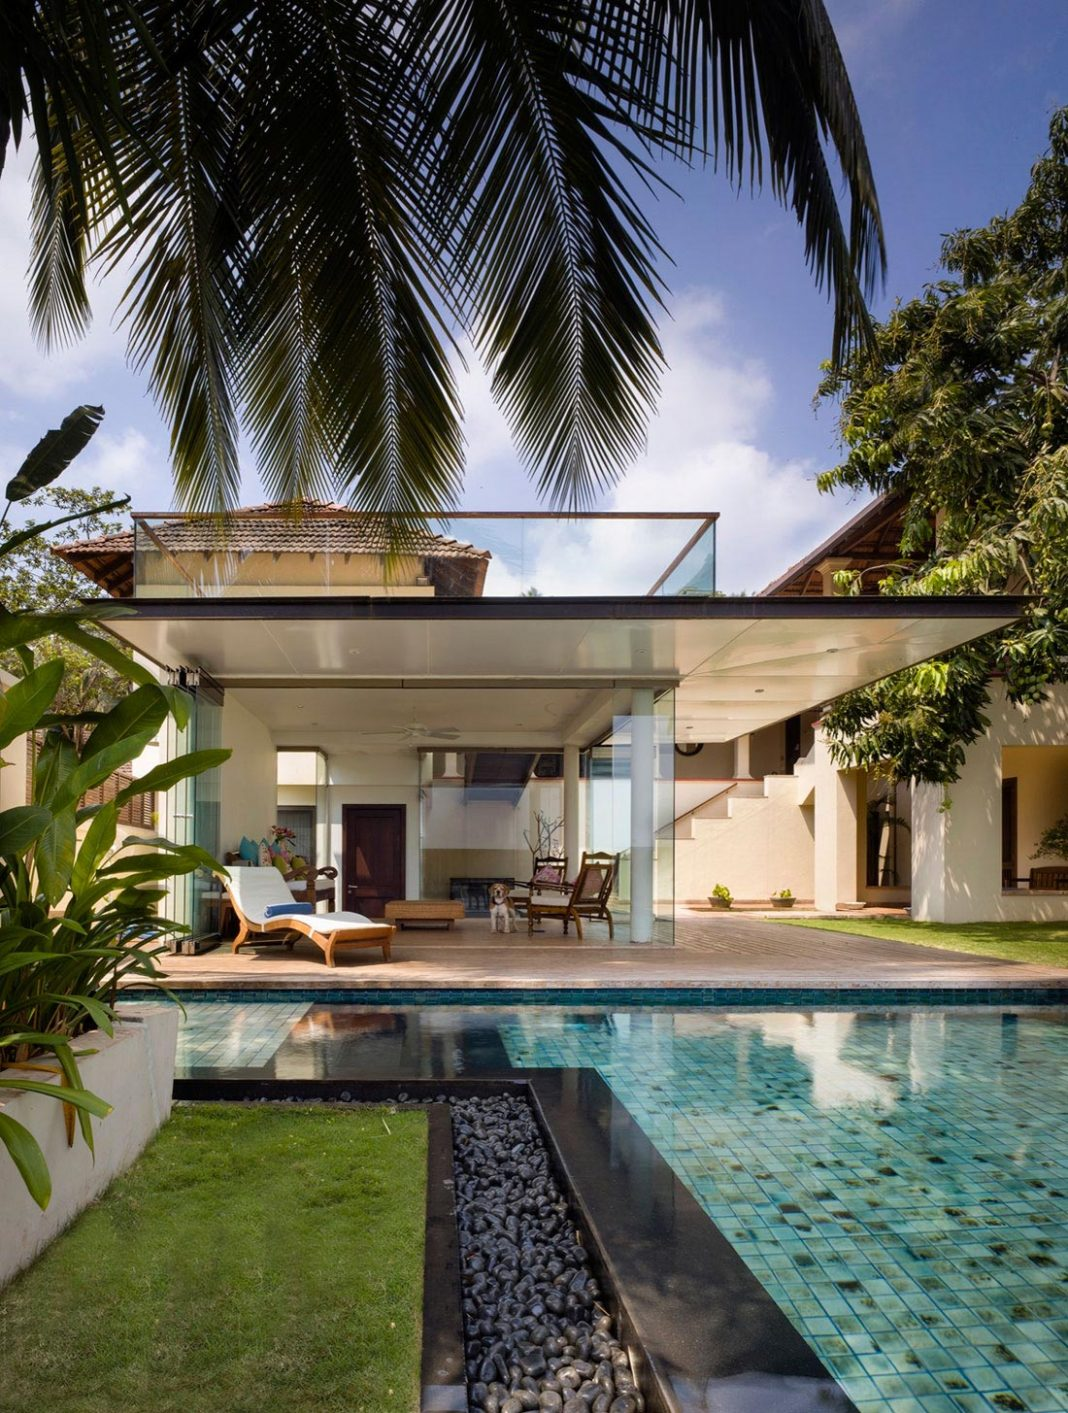 Redesign of a 19th century villa including a blend of modern furniture and found pieces